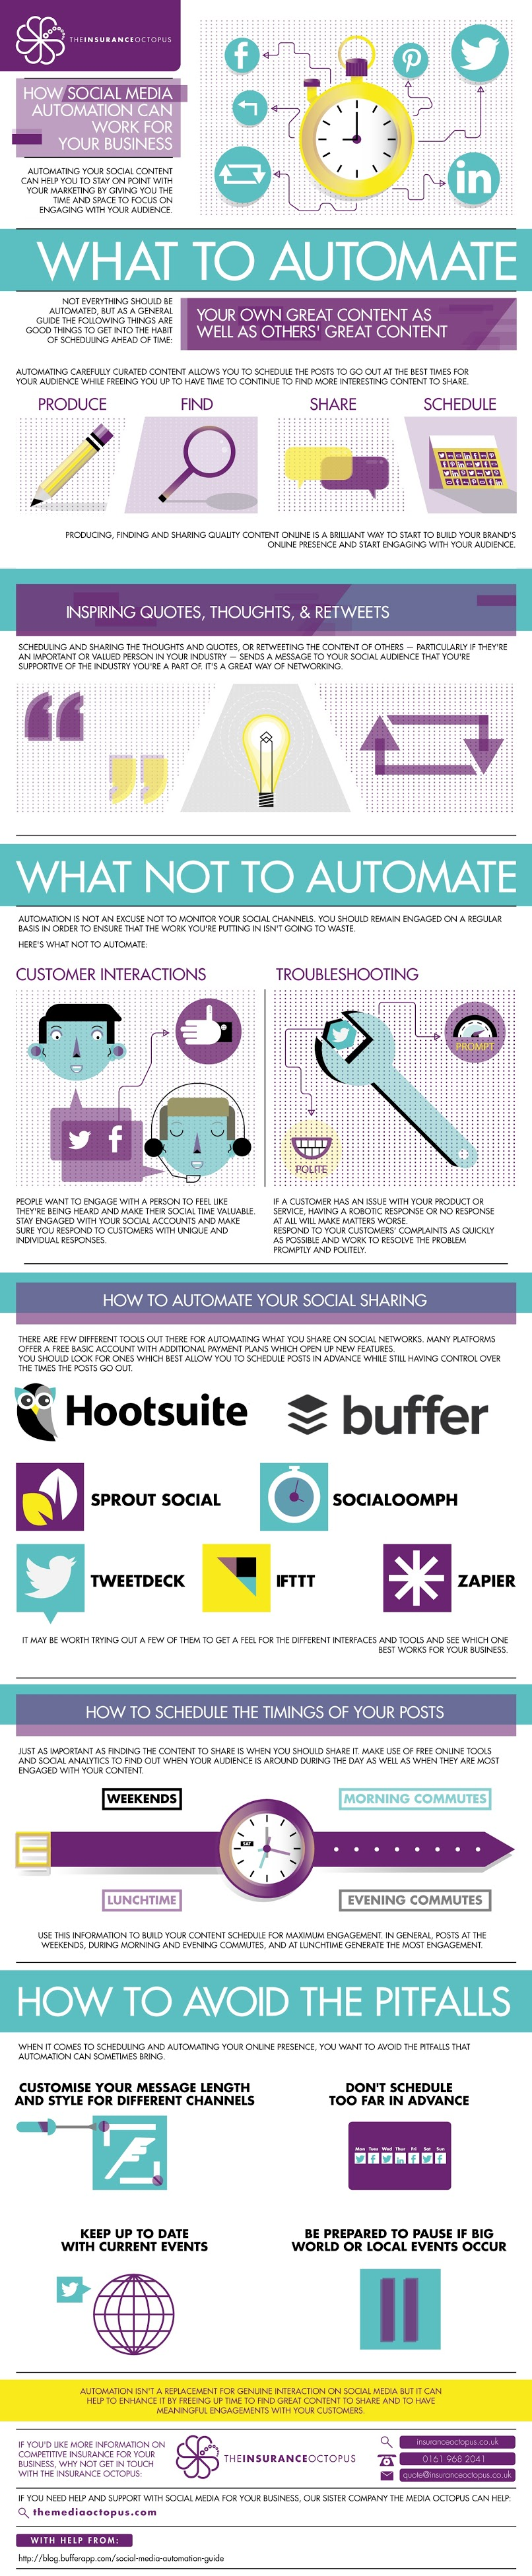 How Social Media Automation Can Work For Your Business - #infographic